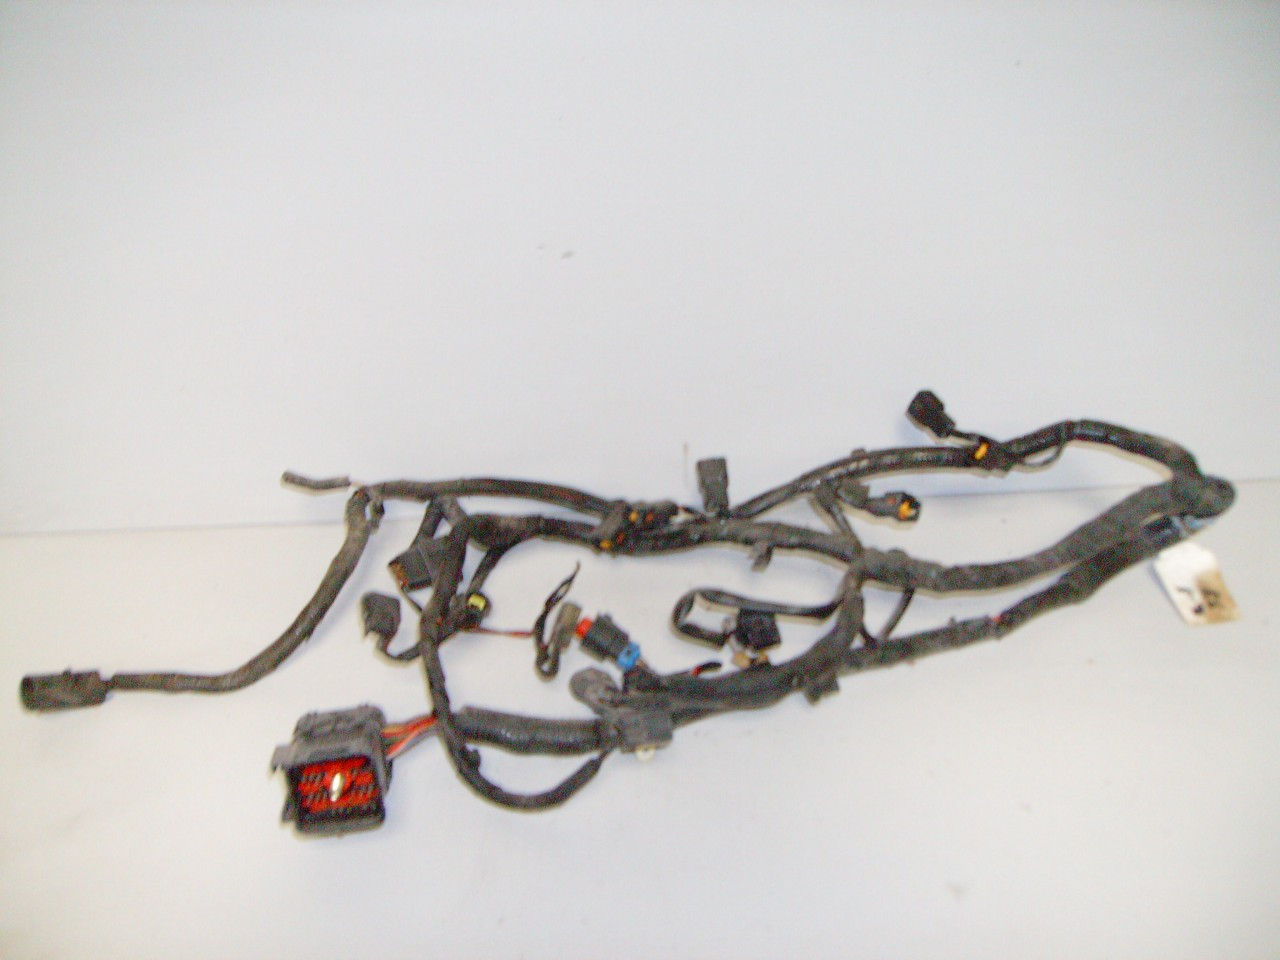 medium resolution of 1996 1998 ford mustang 3 8 engine injection wire harness lx v6 image 1